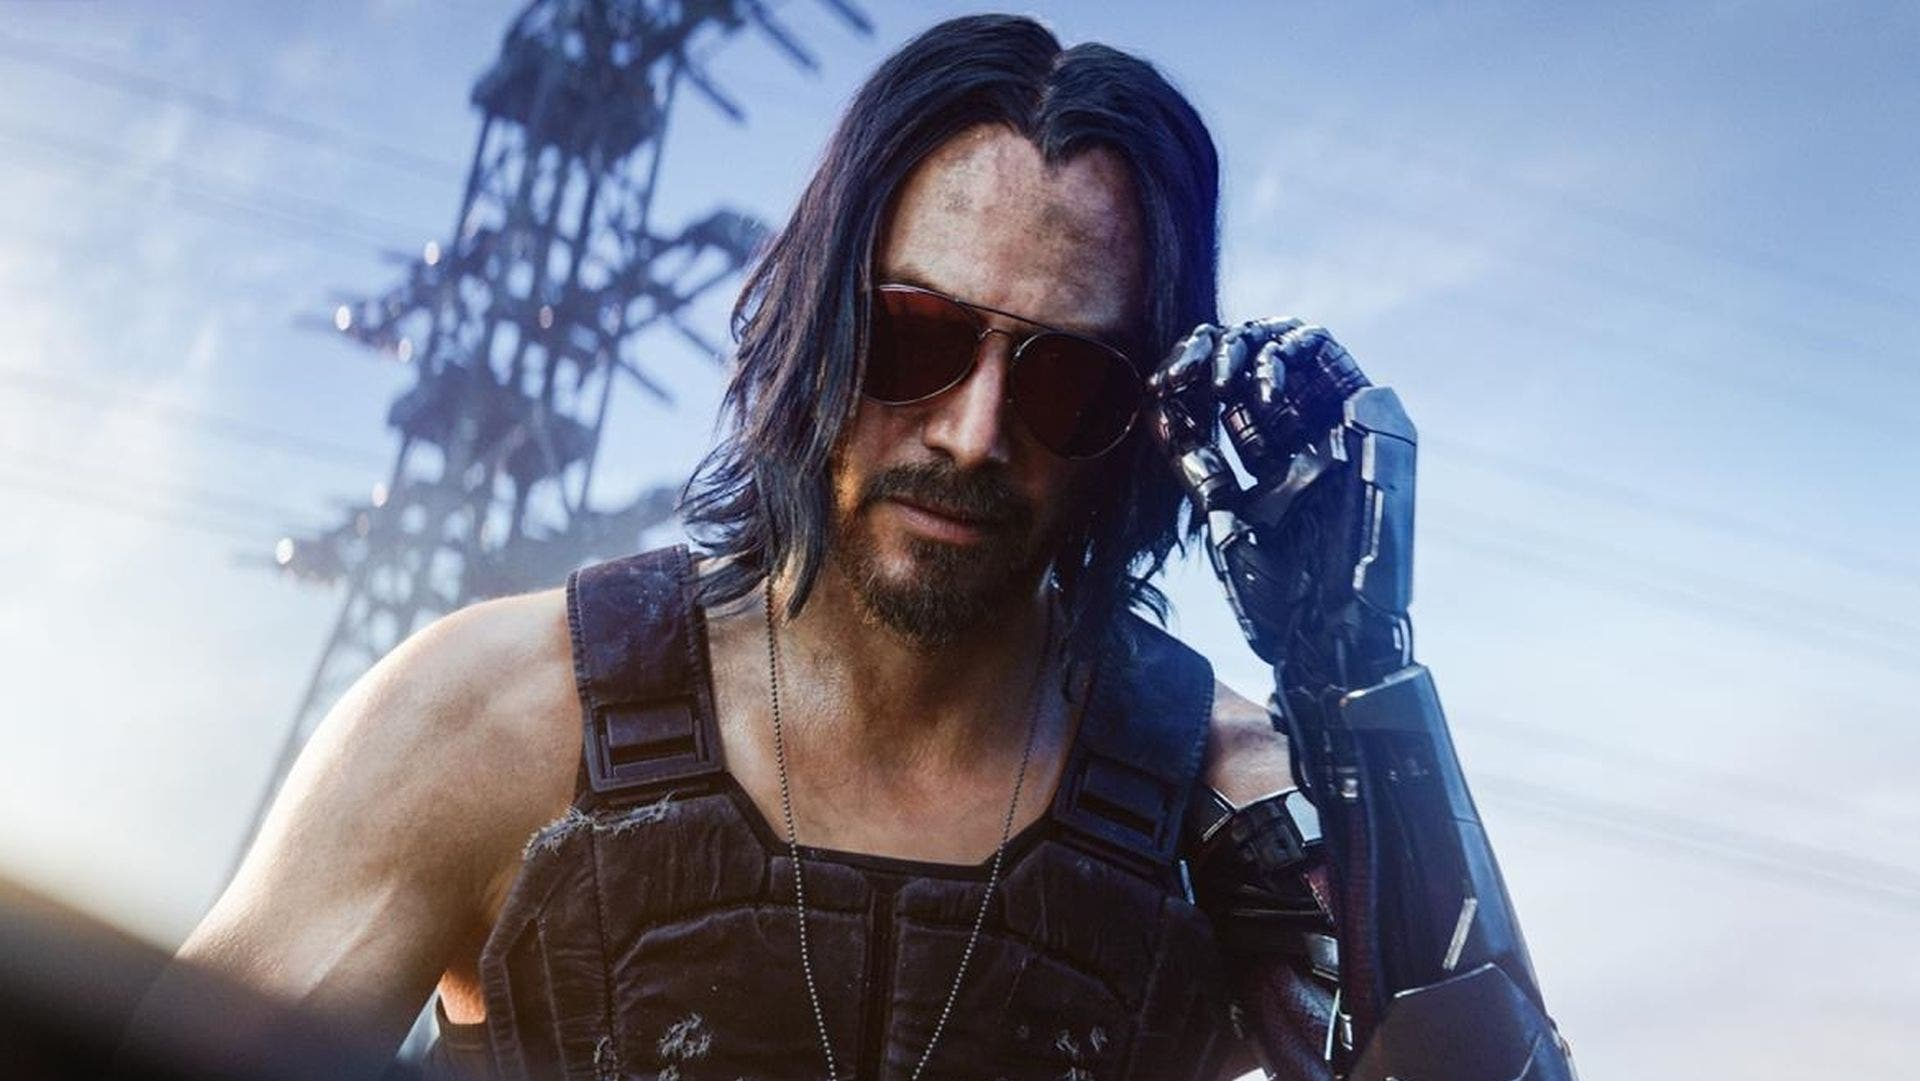 This was Johnny Silverhand from Cyberpunk 2077 before Keanu Reeves